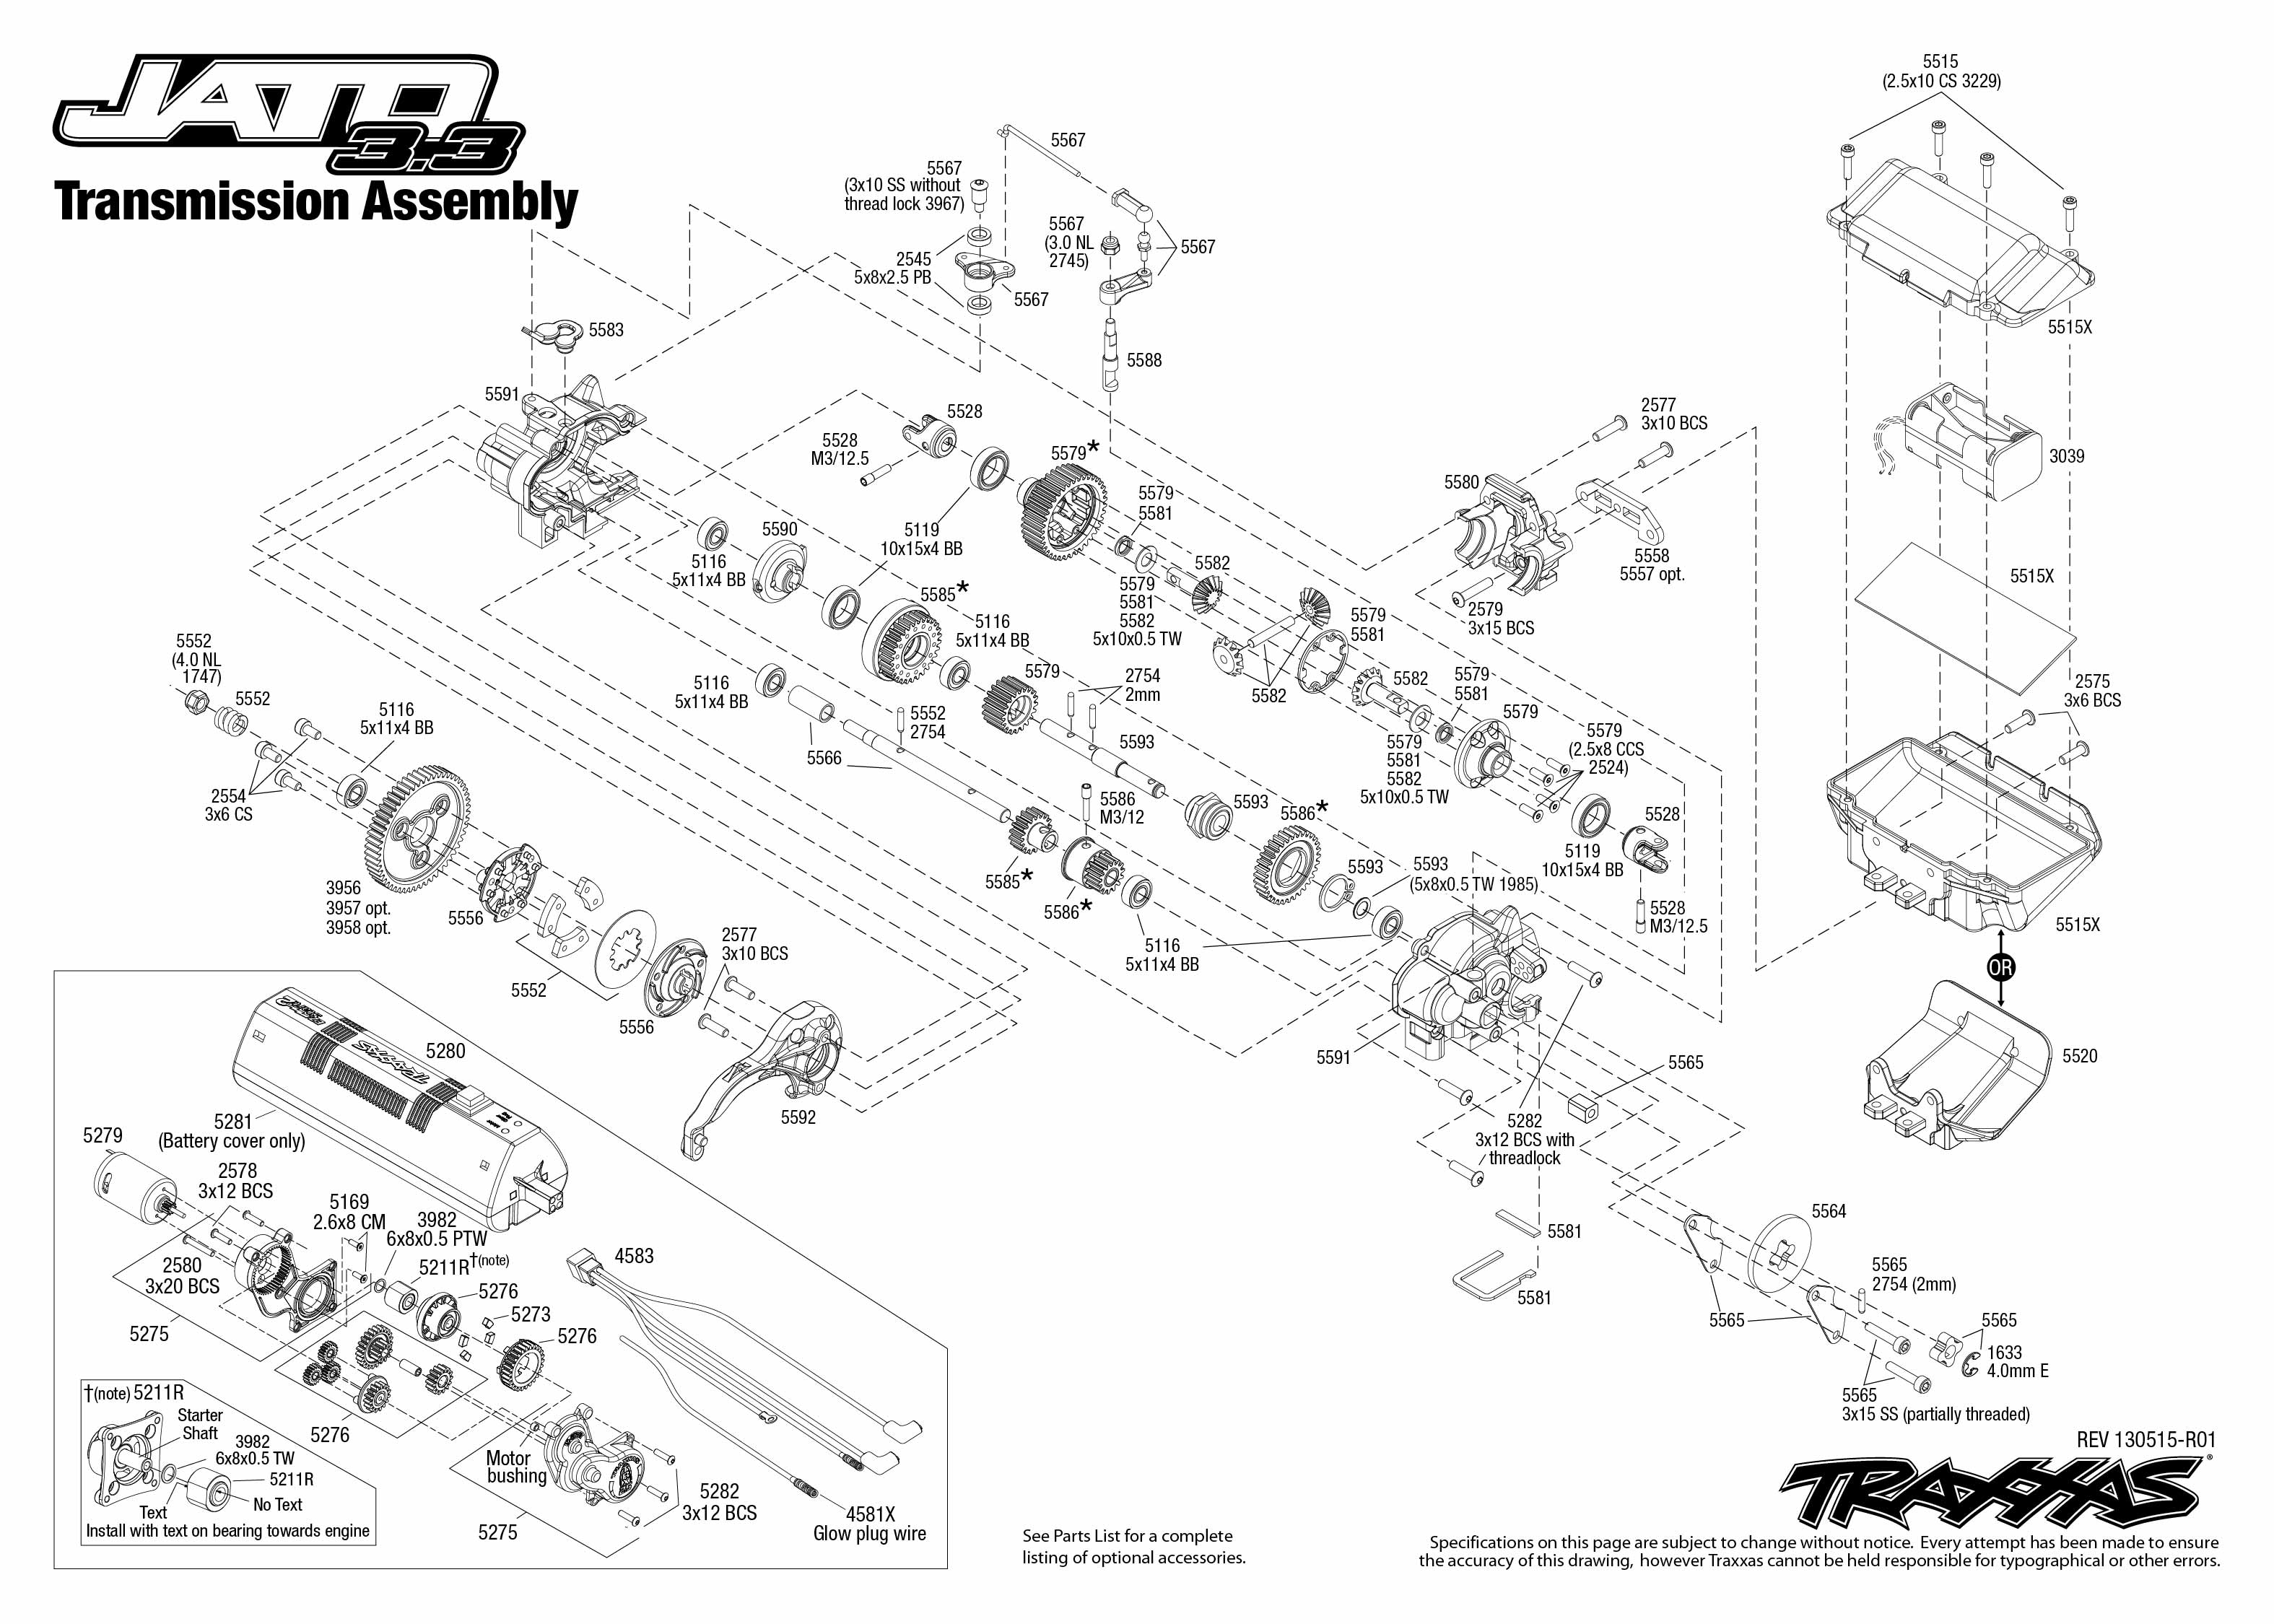 5507_Jato 33 TQi_Explodedviews_130515_5507 Transmission Assembly traxxas jato 3 3 wiring diagram traxxas jato 2 5 box \u2022 indy500 co 3-Way Switch Wiring Diagram for Switch To at gsmportal.co